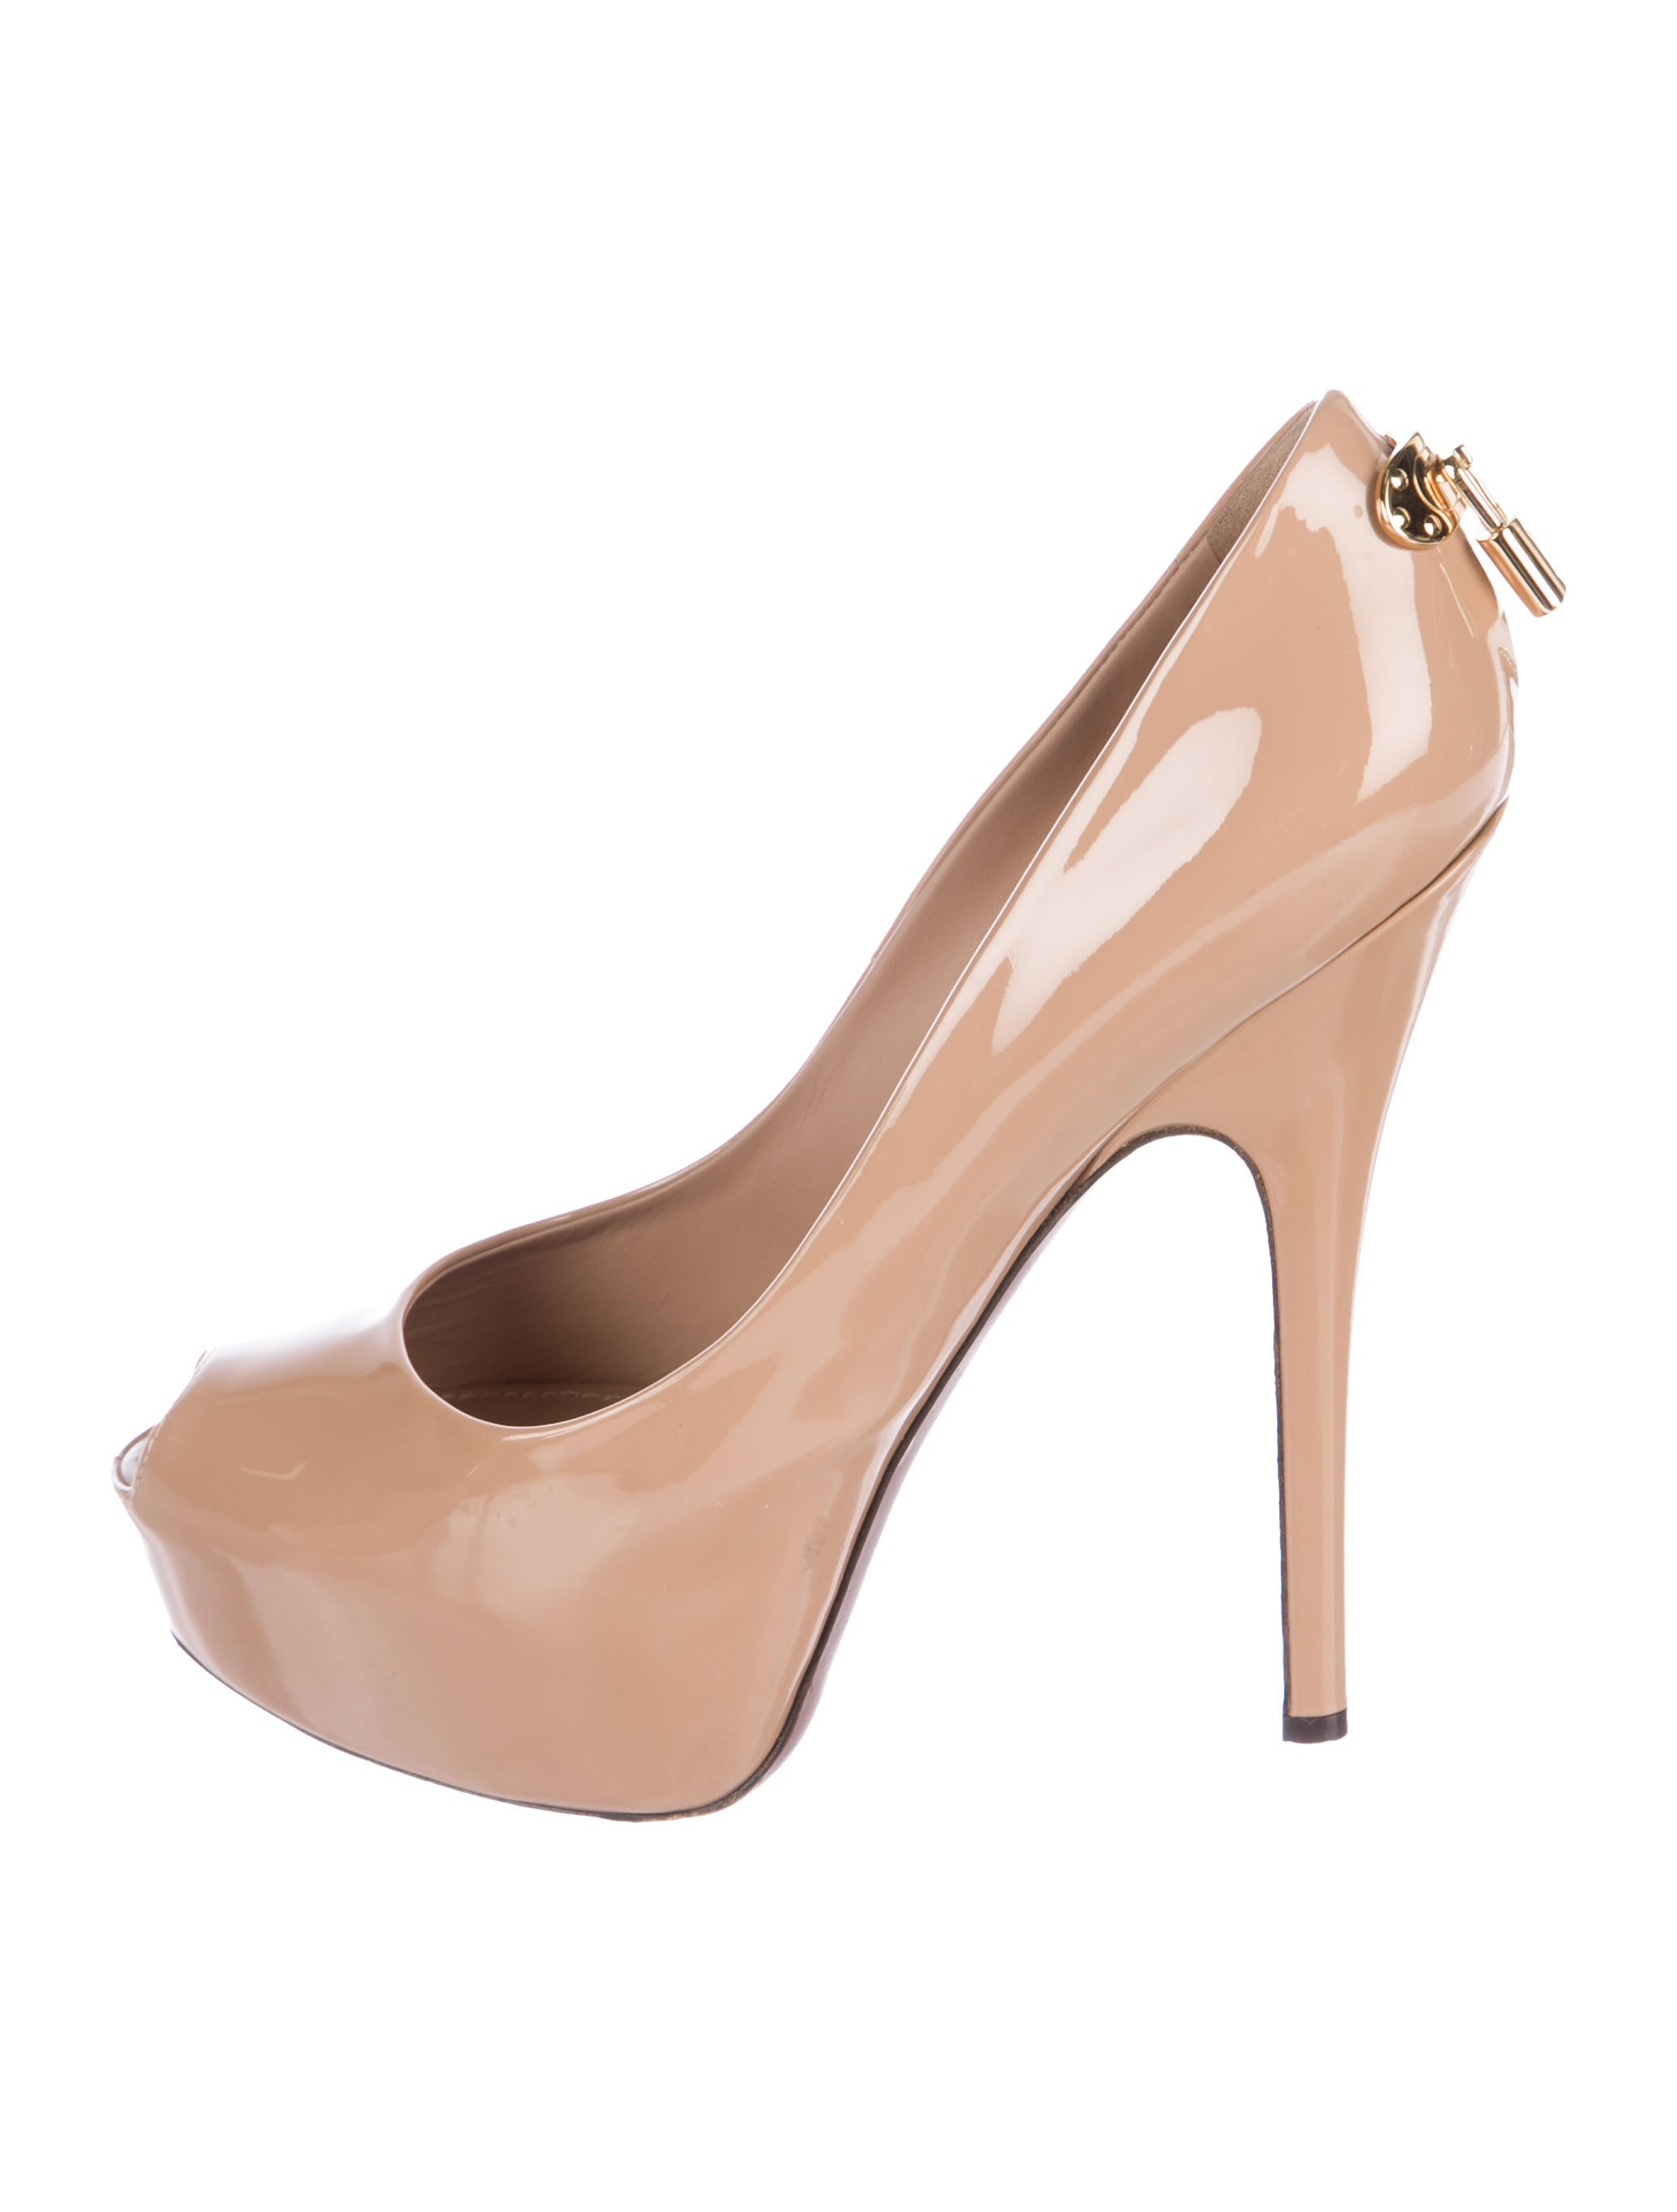 ba605447ff86 Louis Vuitton Oh Really! Platform Patent Pumps - Shoes - LOU192344 ...